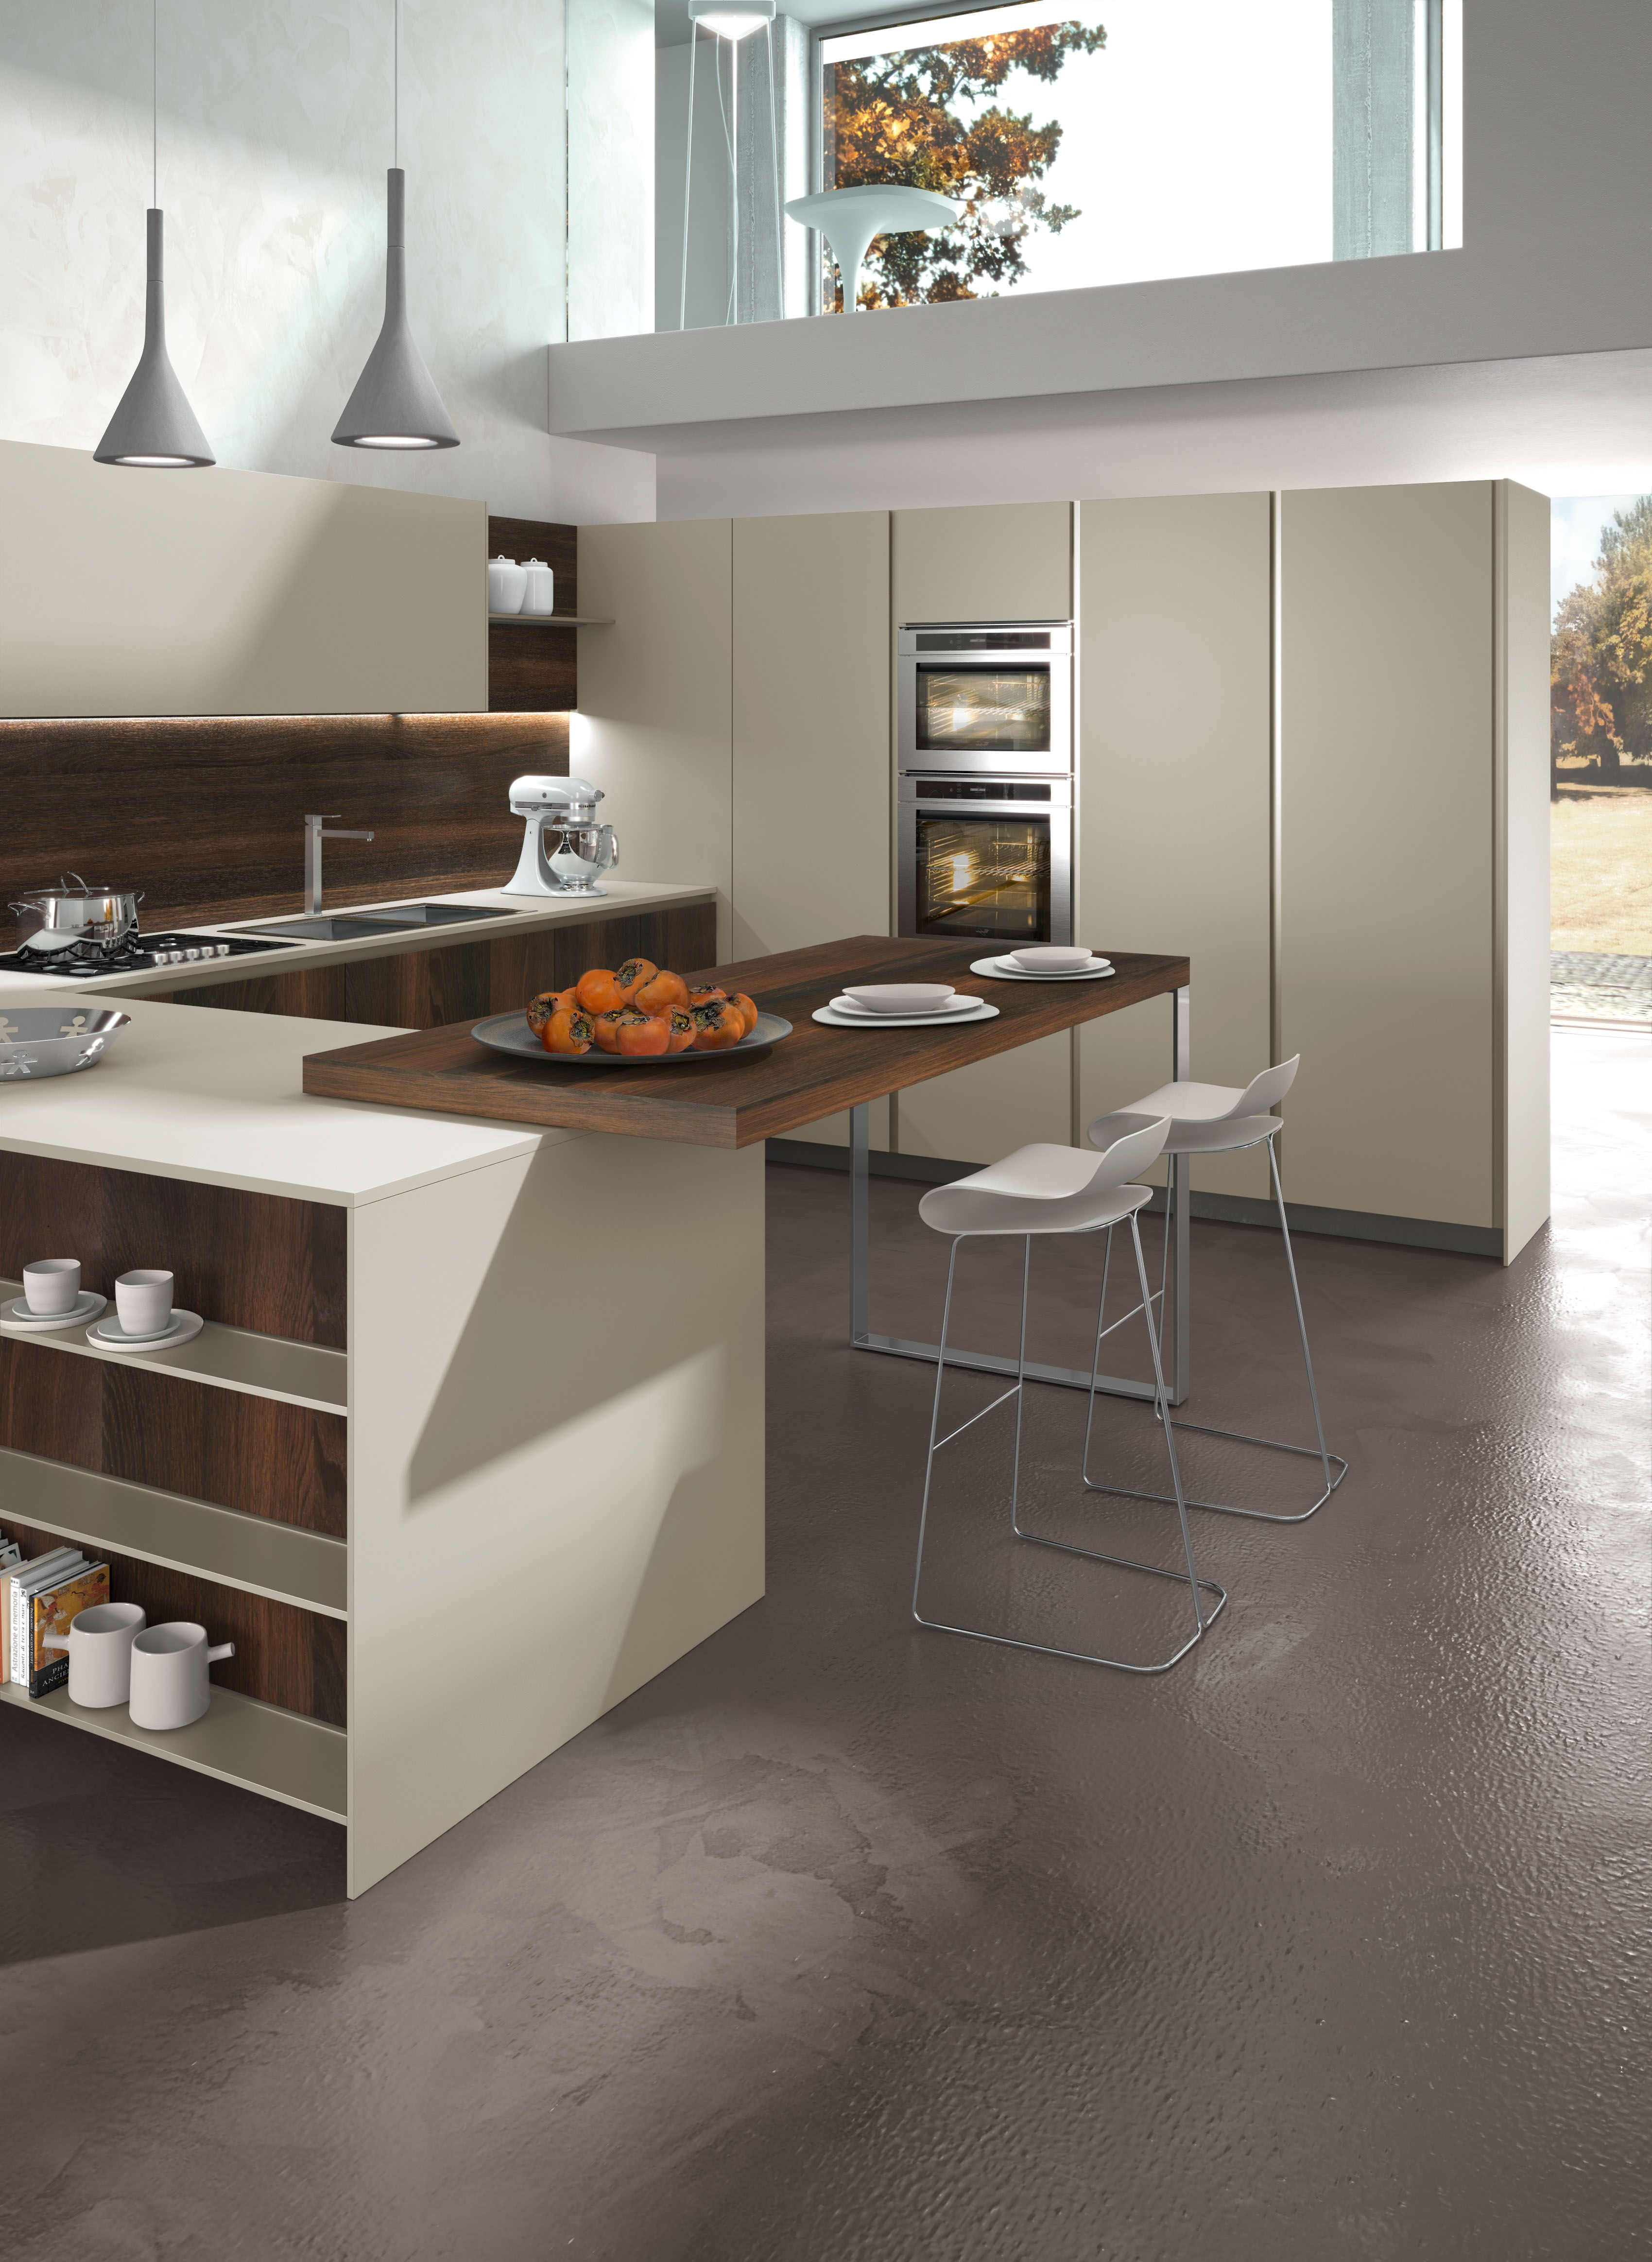 Snaidero Way Kitchen Design Wall And Tall Cabinet Units Allow For Endless Storage Solution Minimalist Kitchen Design Contemporary Kitchen Modern Kitchen Design